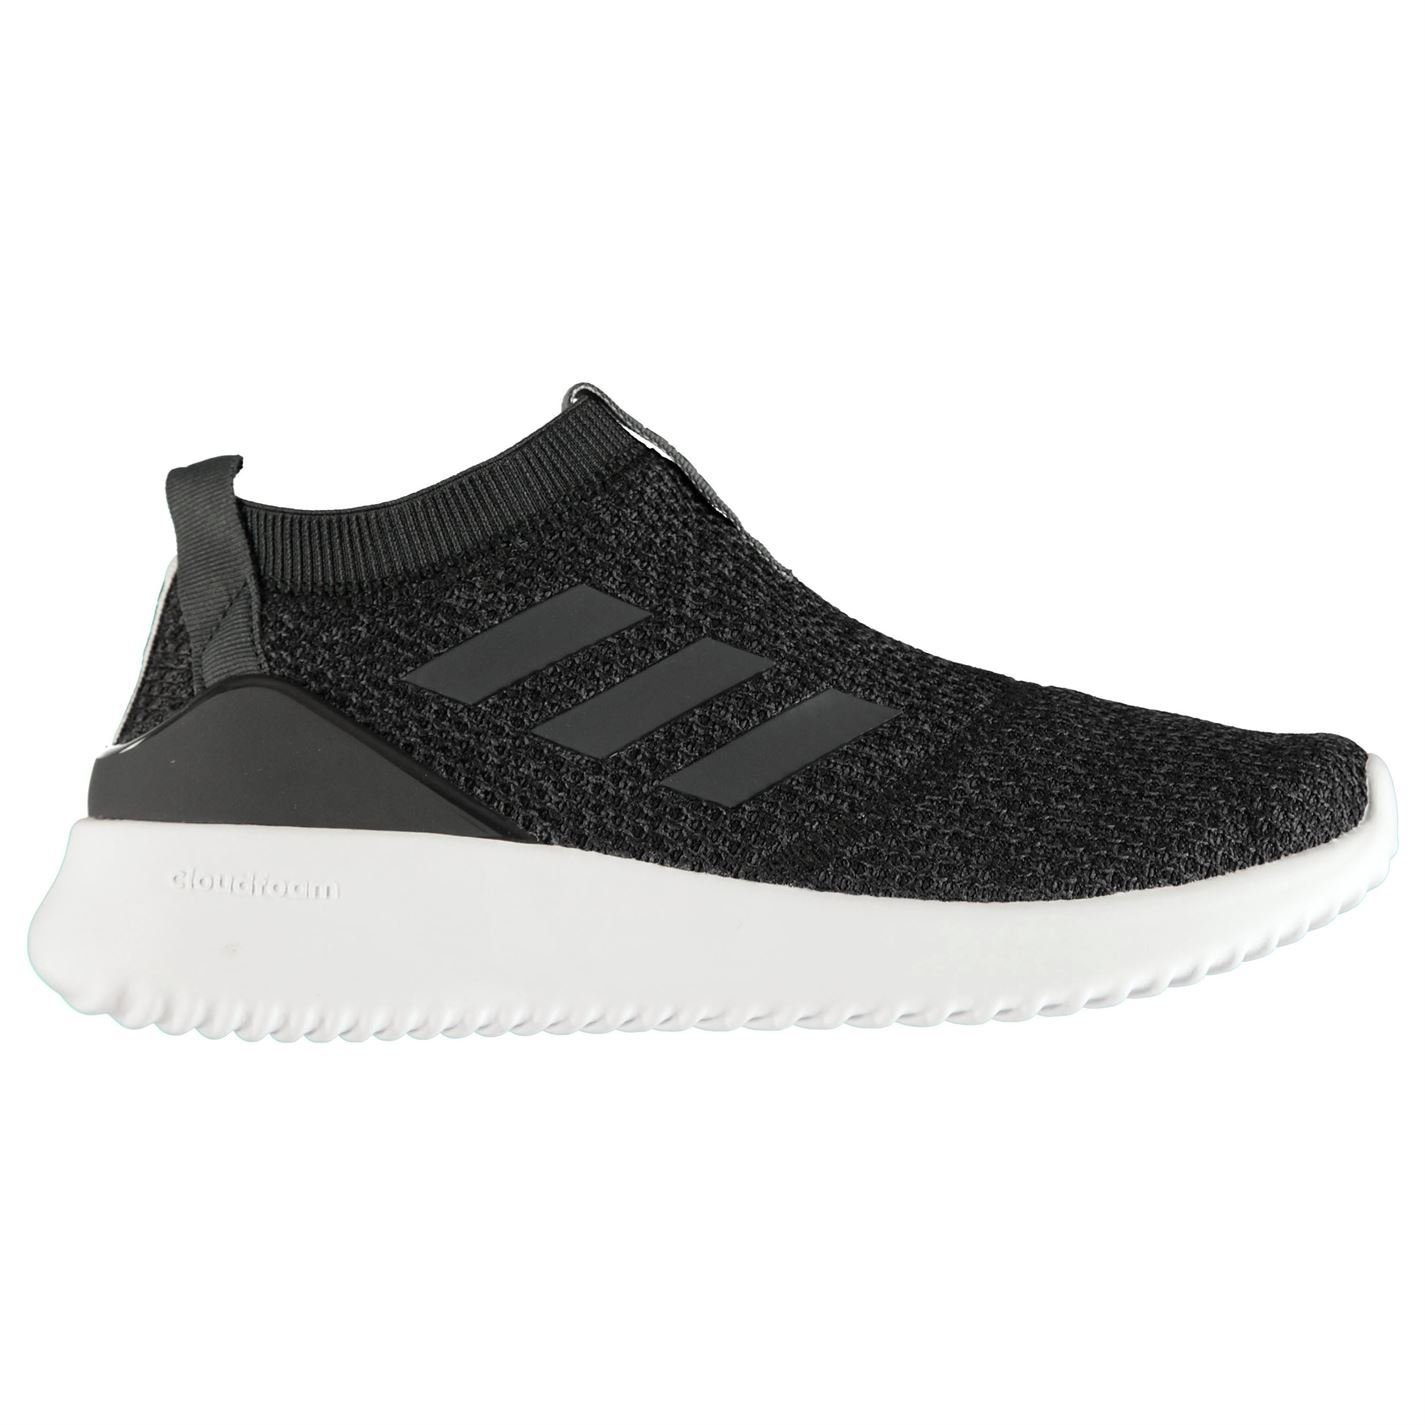 adidas Womens Ultimatafusion Trainers Runners Laceless Knit Knitted Memory Foam Great discount